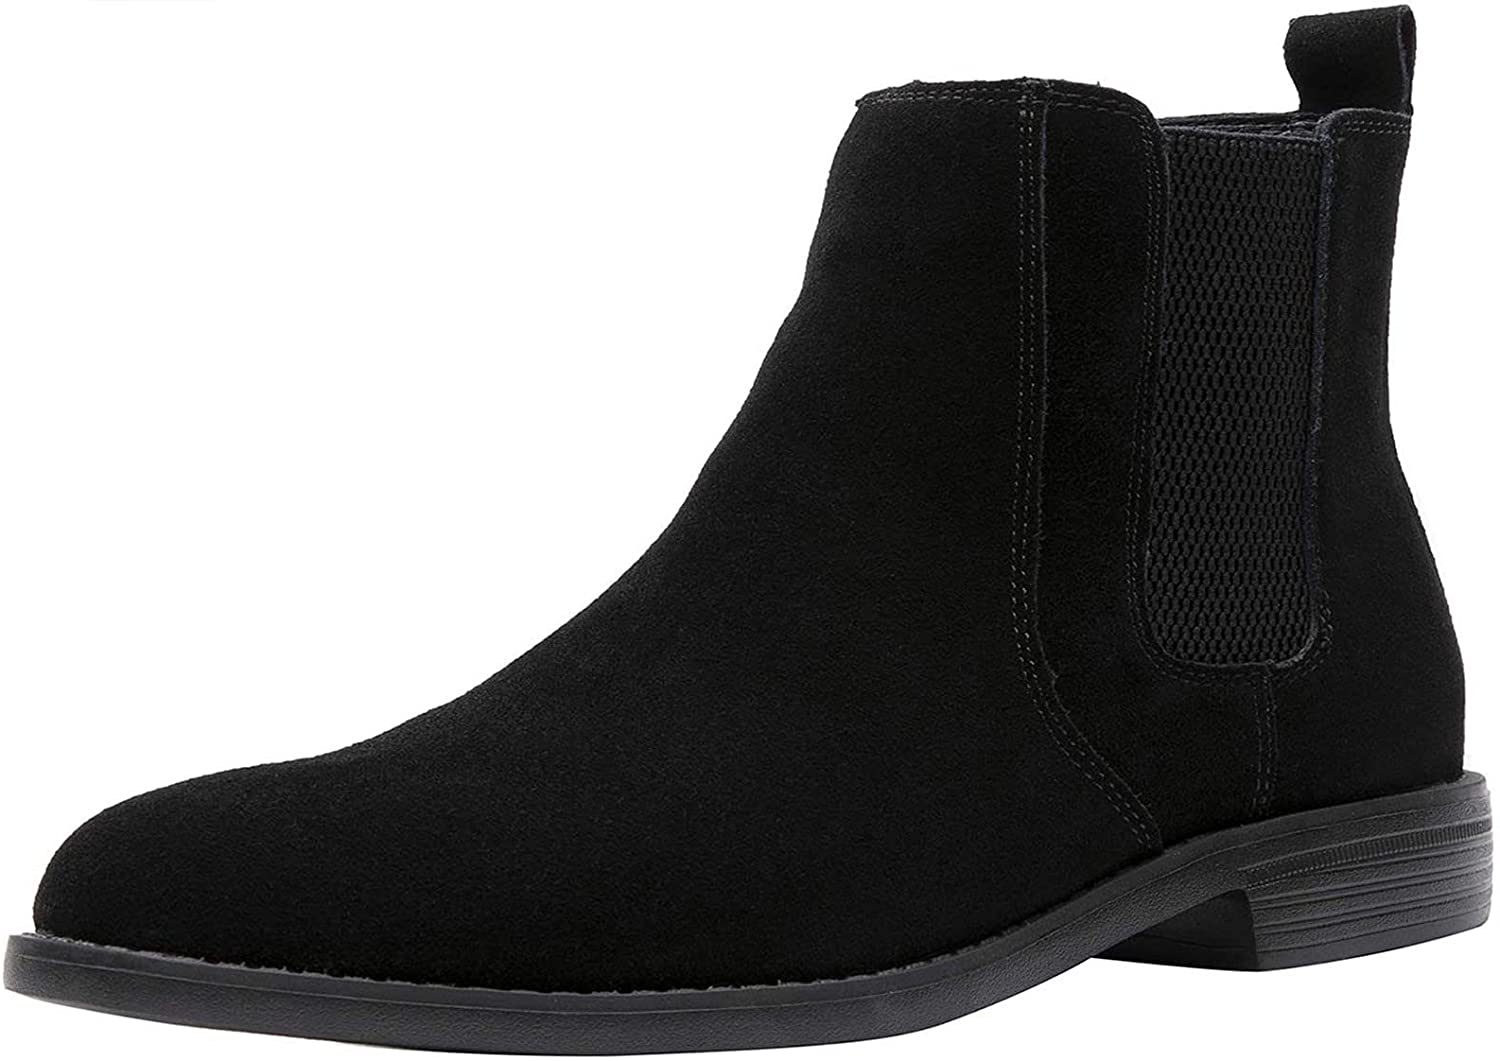 Now free Baltimore Mall shipping JIONS Men Chelsea Slip-on Suede Leather Casual Lightweight Boots